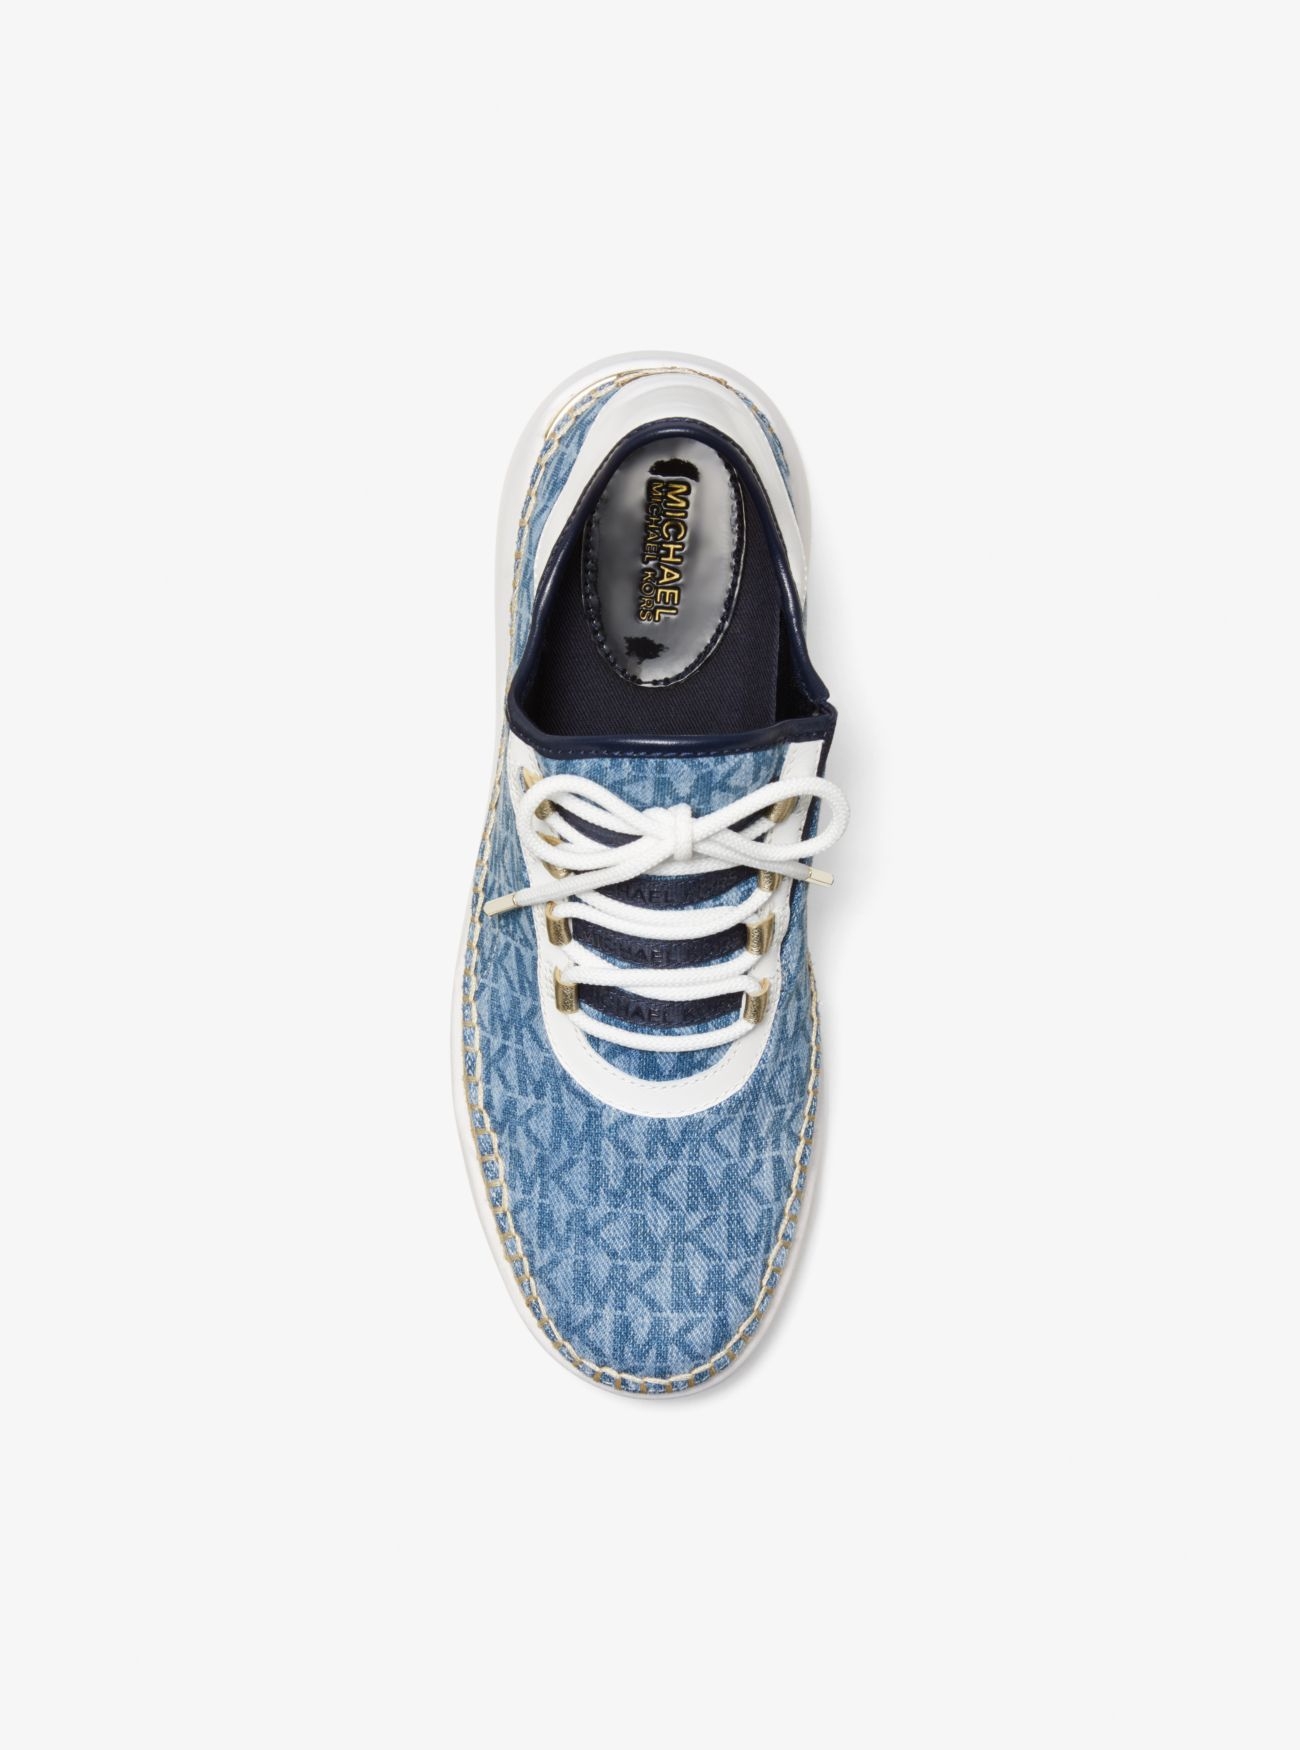 479d9d4886f7 ... Finch Logo Denim Lace-Up Sneaker. MICHAEL Michael Kors